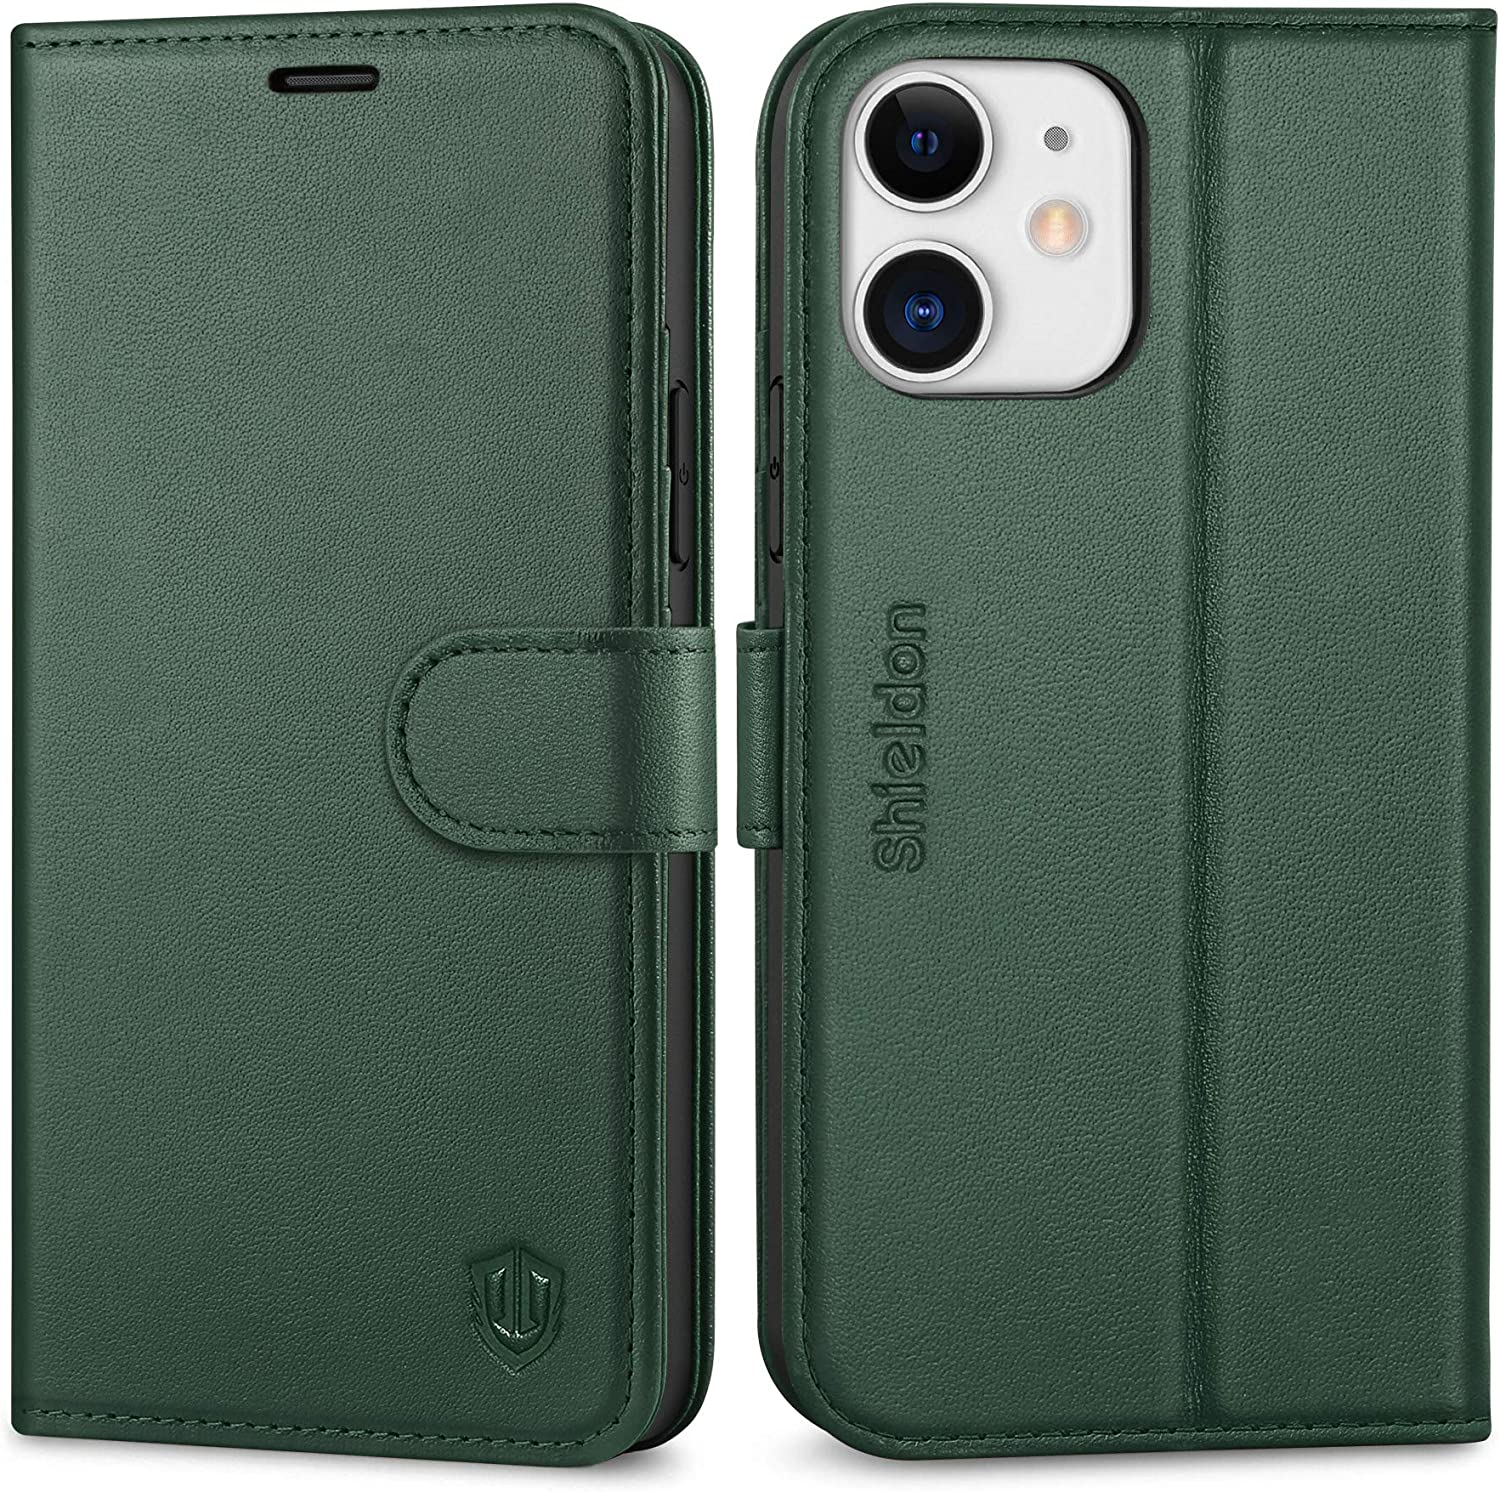 "SHIELDON Case for iPhone 12/12 Pro, Genuine Leather Wallet Case with Kickstand and RFID Blocking Credit Card Slots Magnetic Closure Compatible with iPhone 12/12 Pro 5G (6.1"" 2020) - Midnight Green"